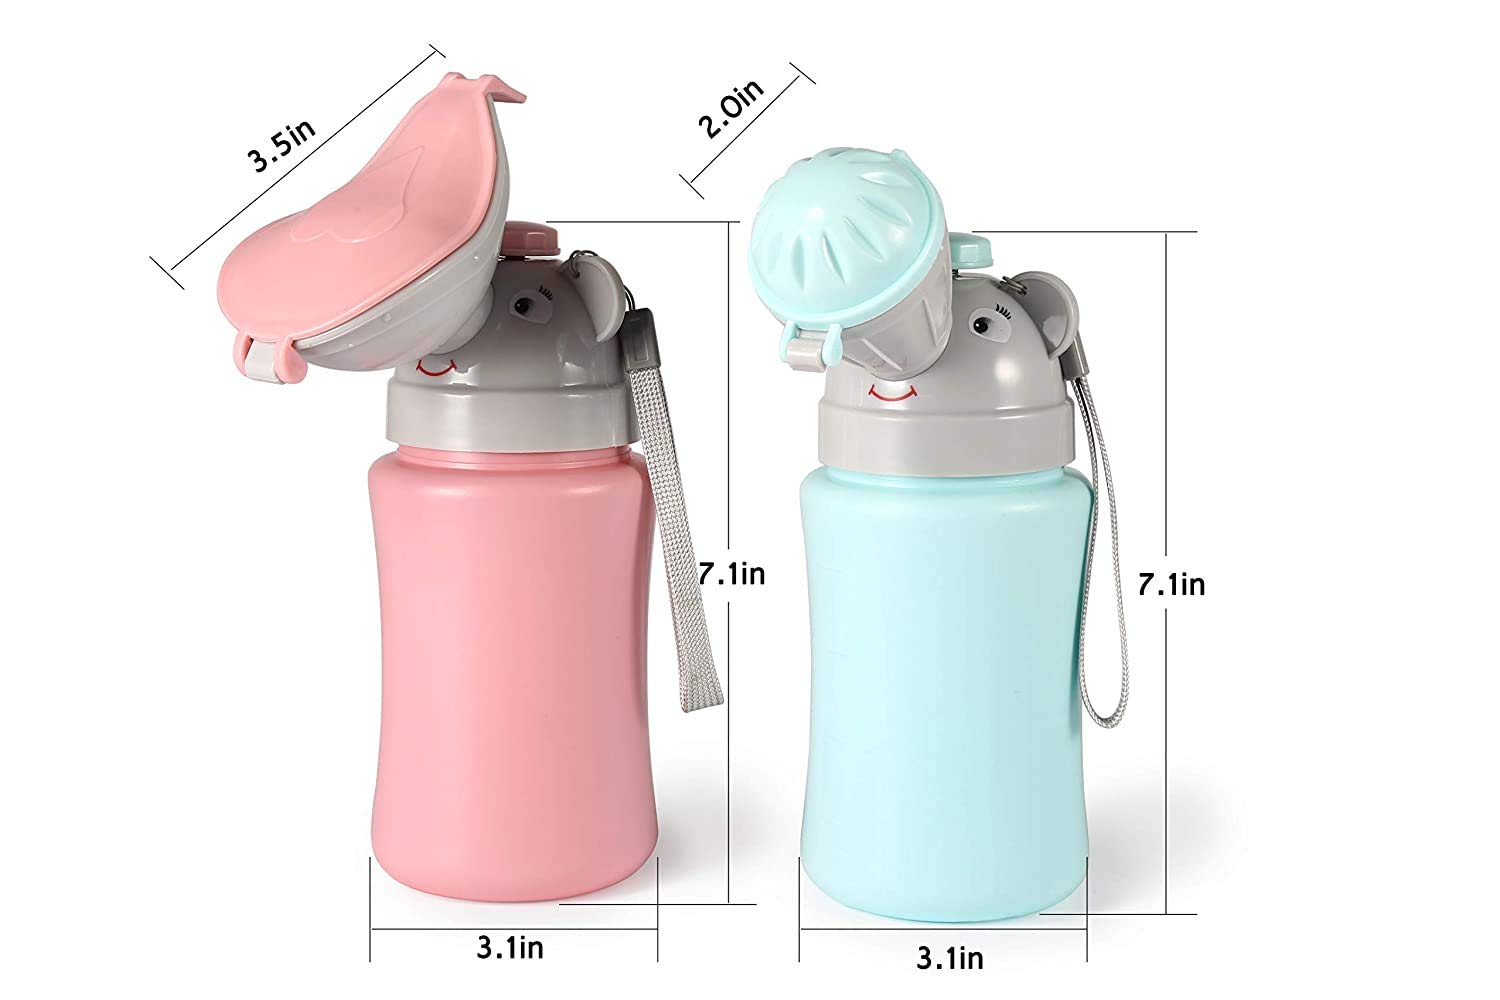 Portable Potty Travel for Car Travel Camping for Outdoor Car Travel Road Trip Camping Park Beach (Girl Pink)